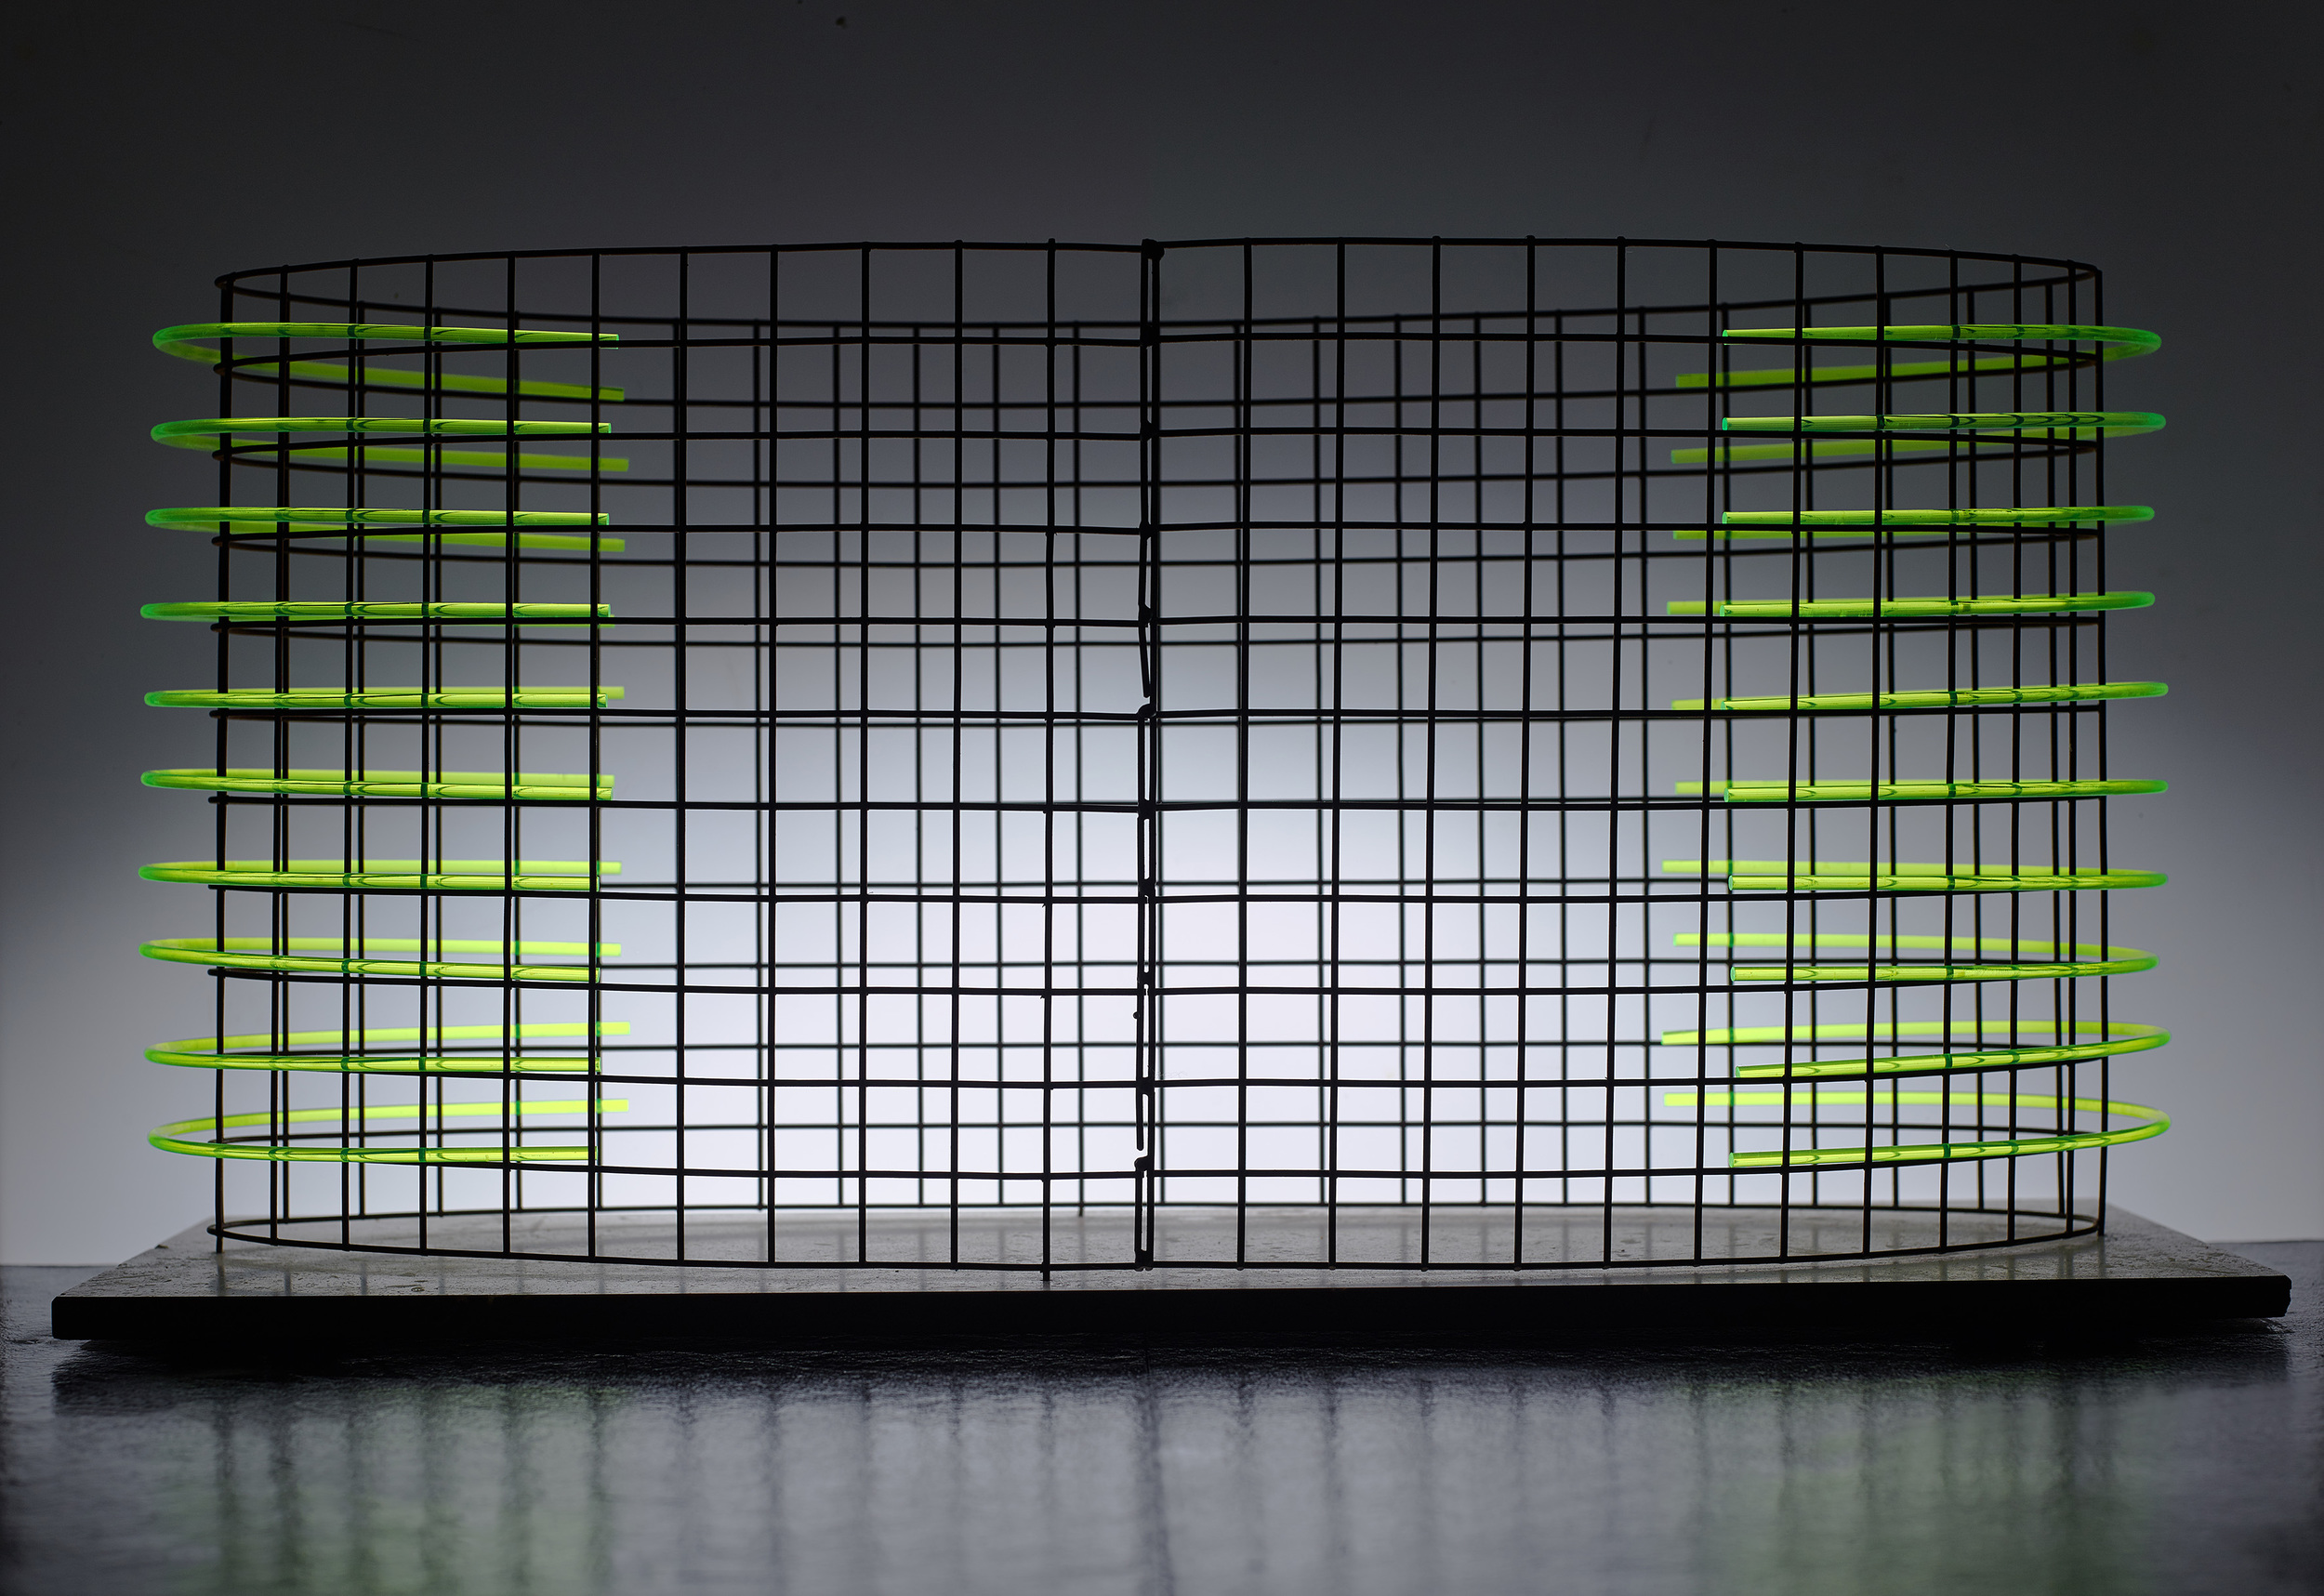 Lozenge 61x30x20 Steel mesh, stone and Fluorescent Rods,  Table top